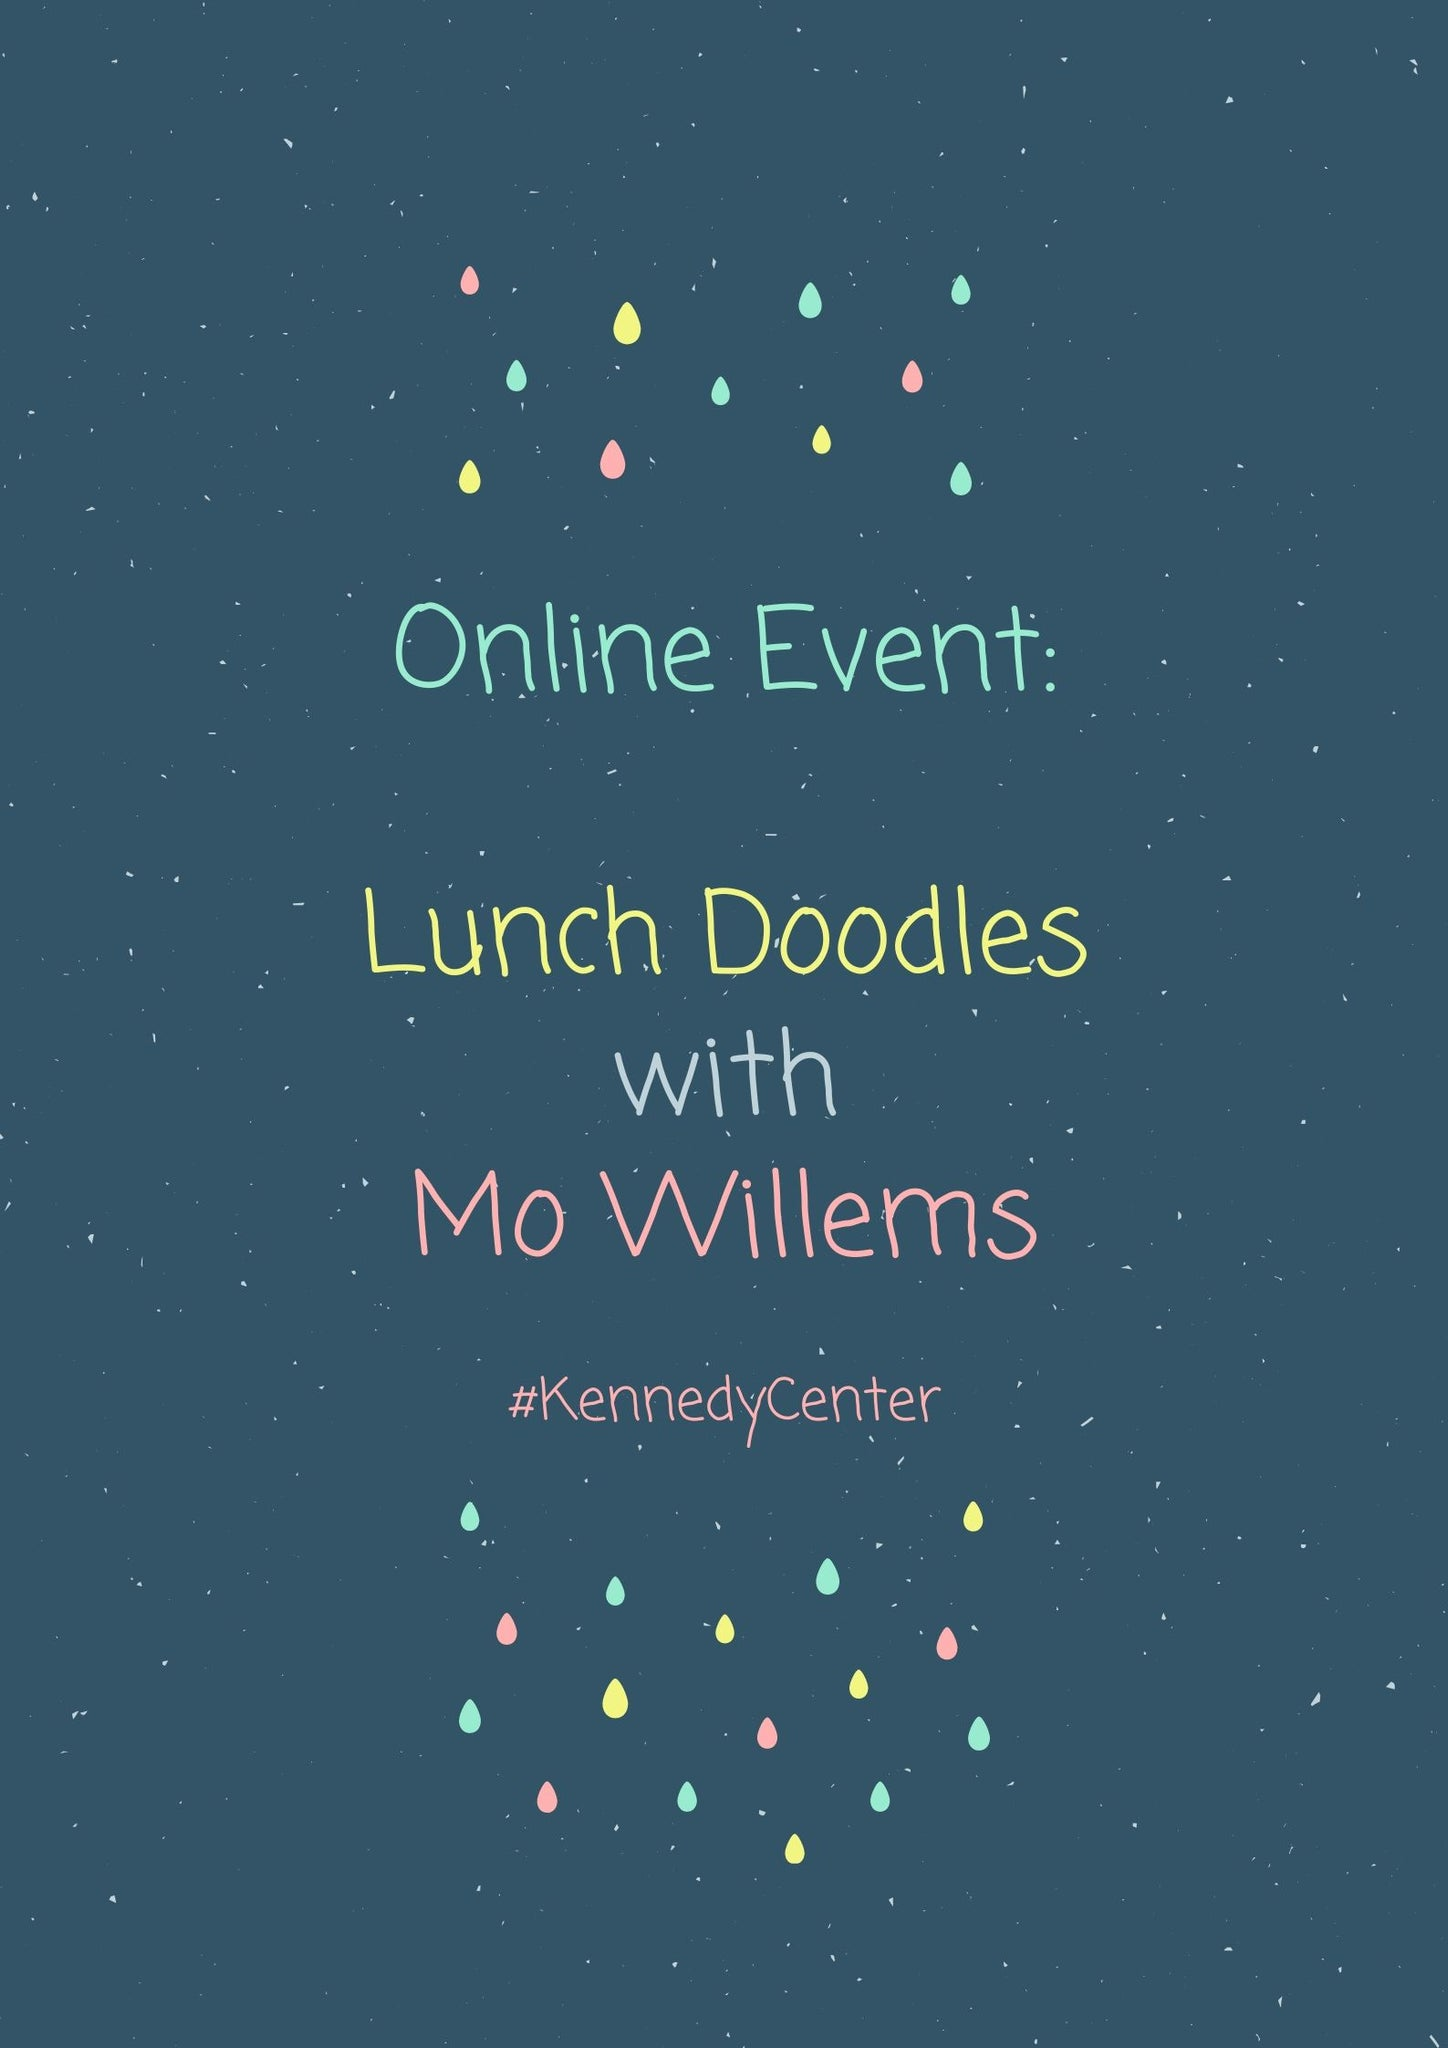 Online Event: LUNCH DOODLES with Mo Willems! #KennedyCenter